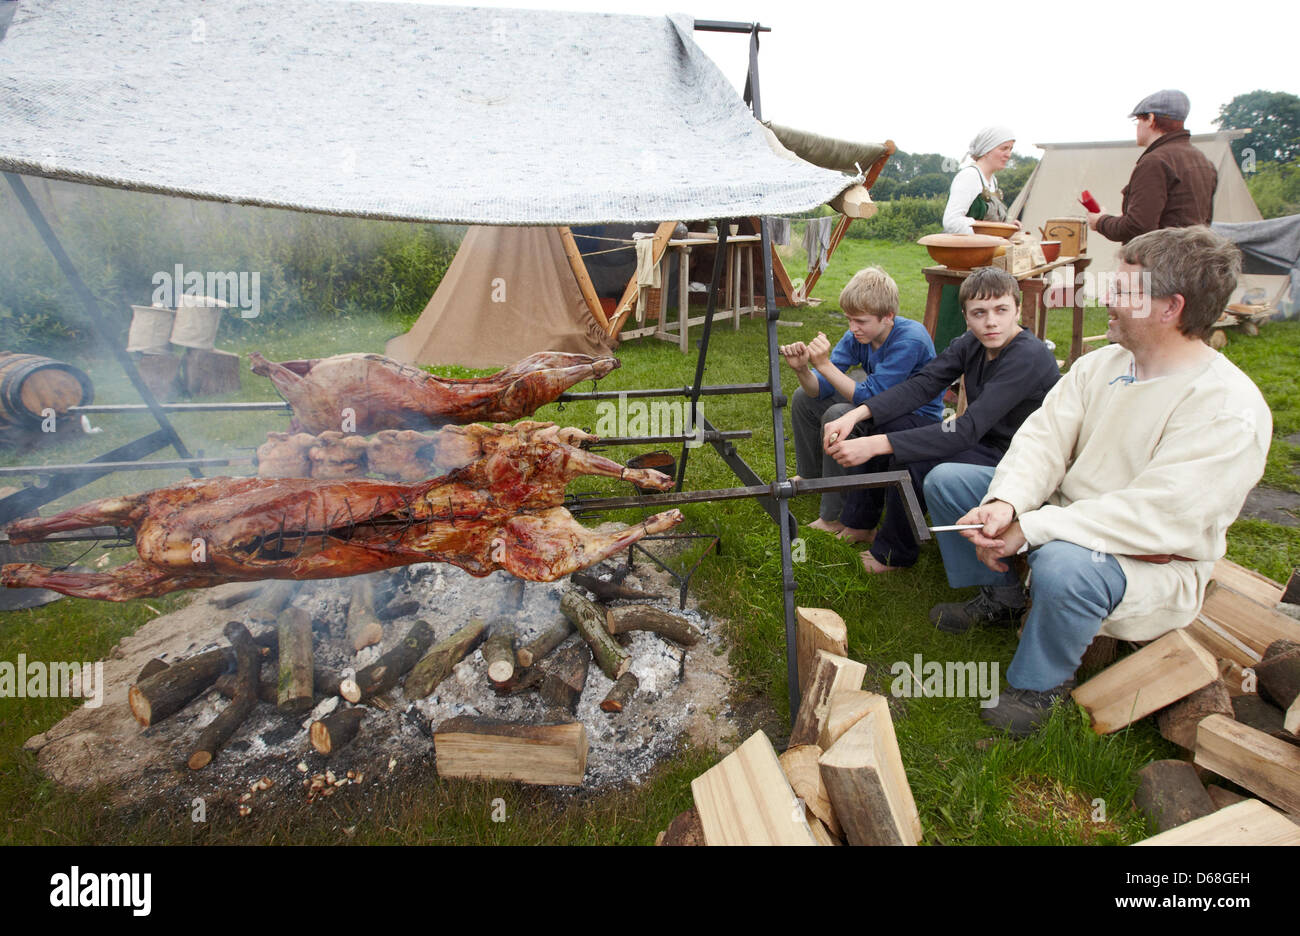 Johann Nueborg from Denmark (R) and his sons, Klaus and Nikolej have a barbeque during the event 'Kurs Haithabu' - Stock Image